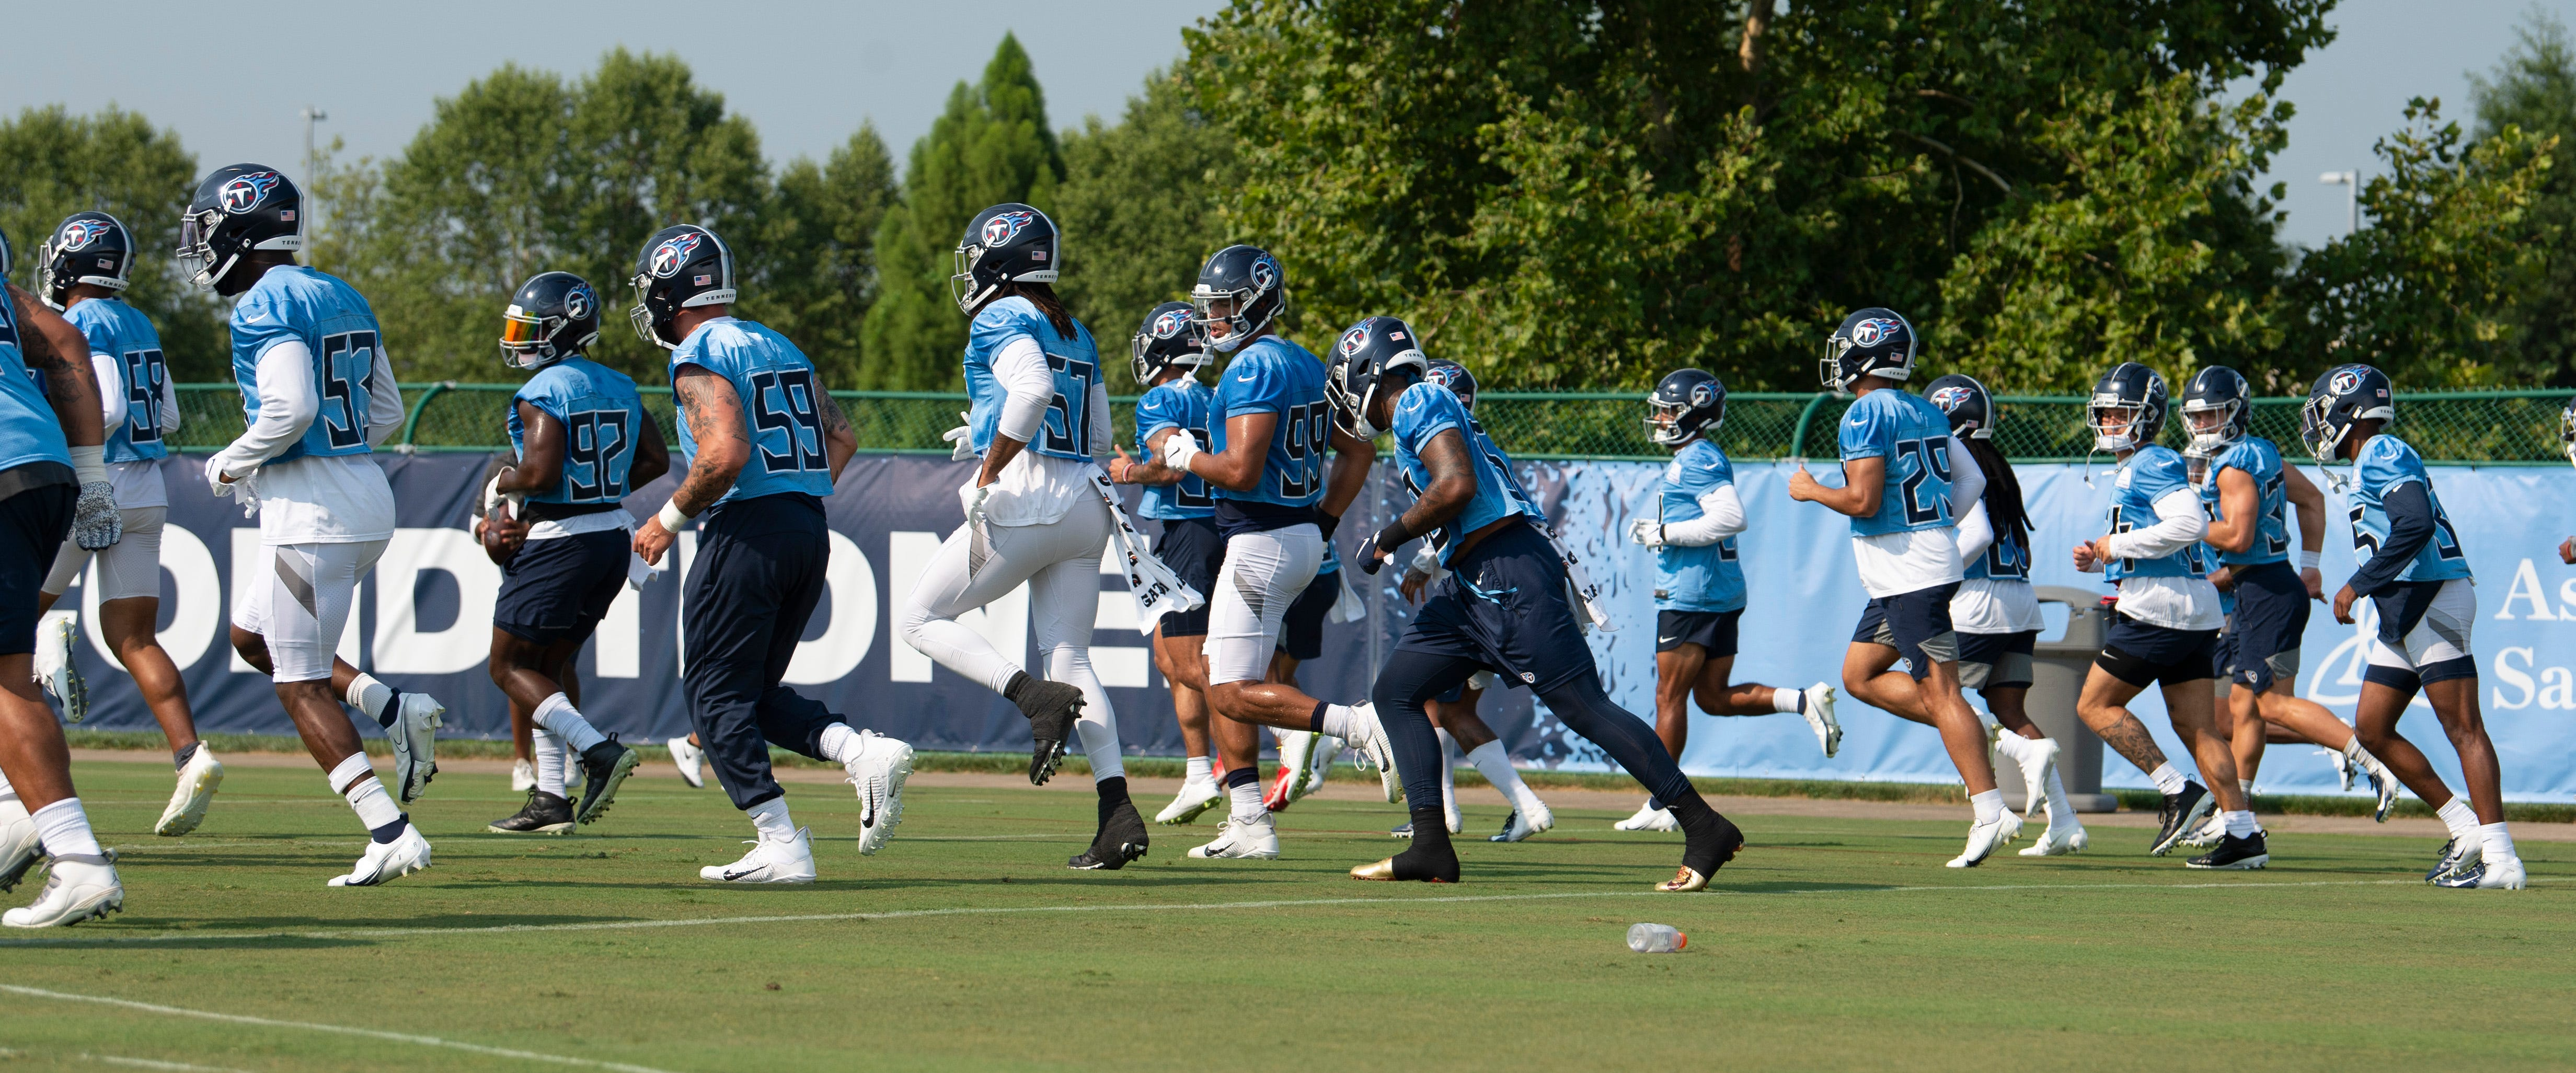 Titans: Videos and notes from day one of training camp